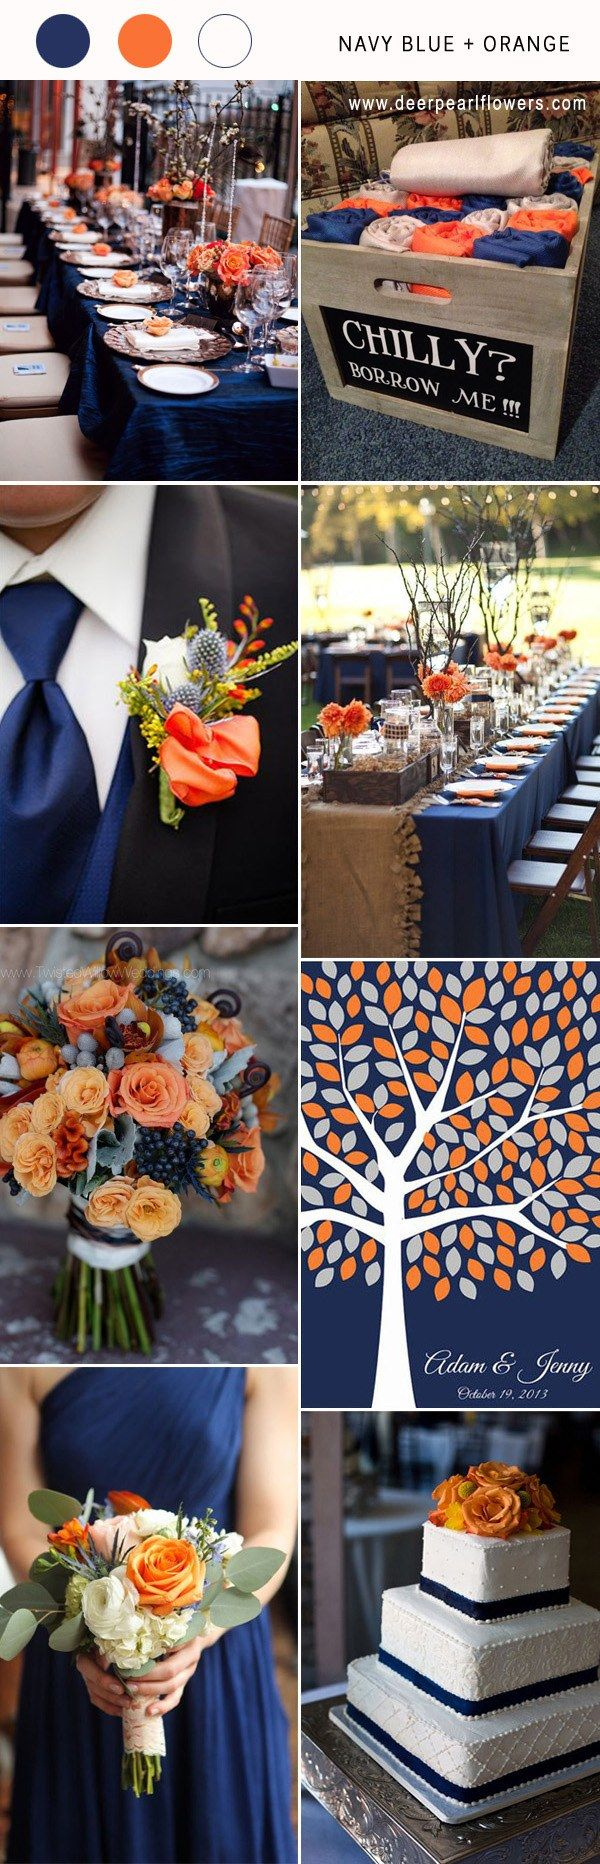 navy blue and orange fall wedding color combo ideas for 2018 #blueweding #weddingcolors #weddingideas / http://www.deerpearlflowers.com/navy-blue-wedding-color-combo-ideas/